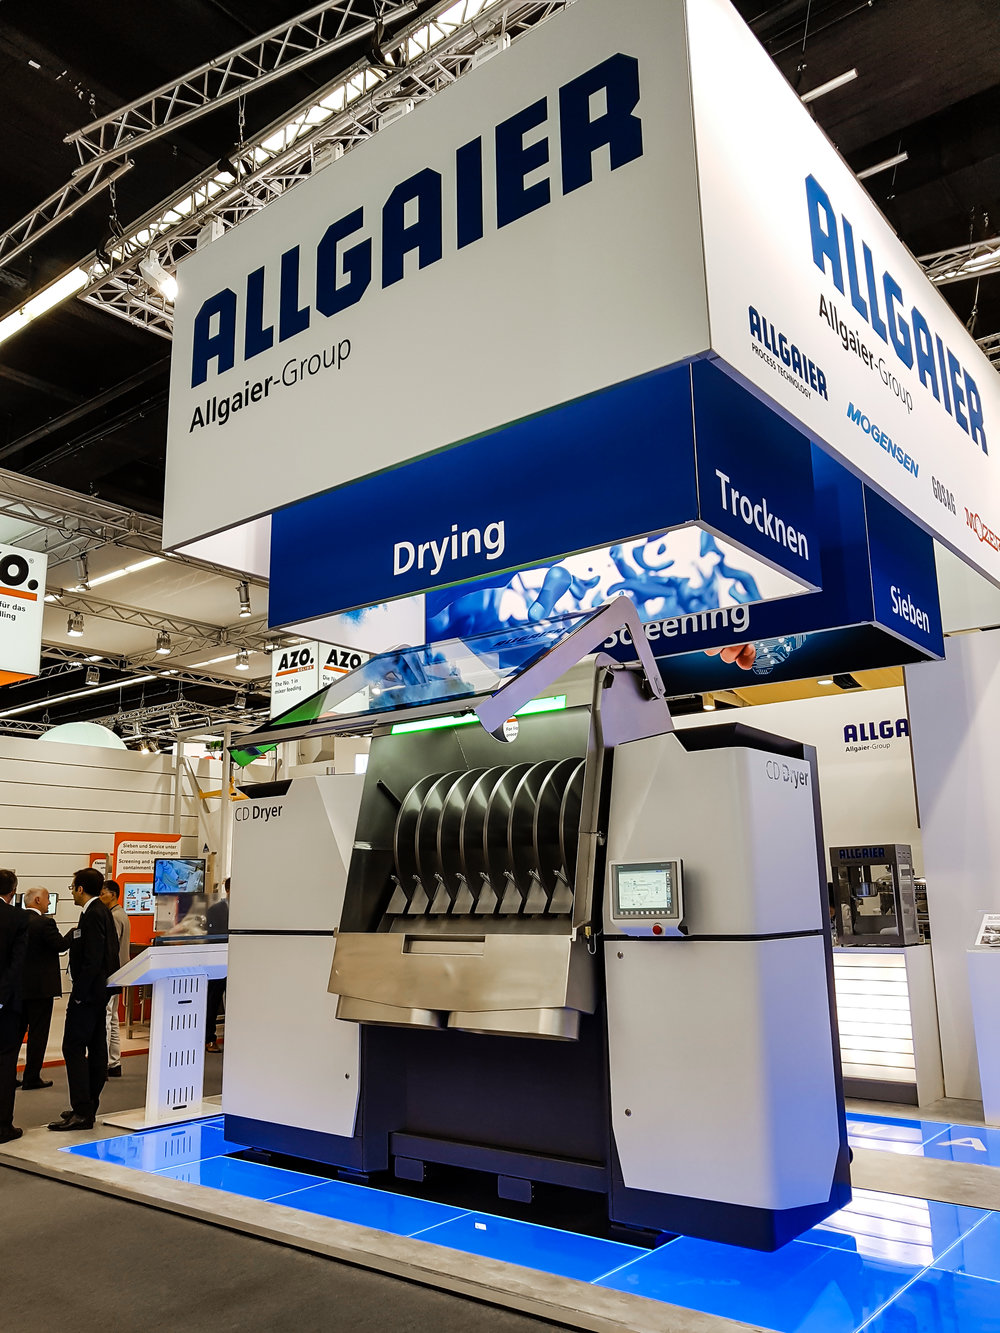 Allgaier CD Dryer at ACHEMA 2018 in Frankfurt am Main, Germany